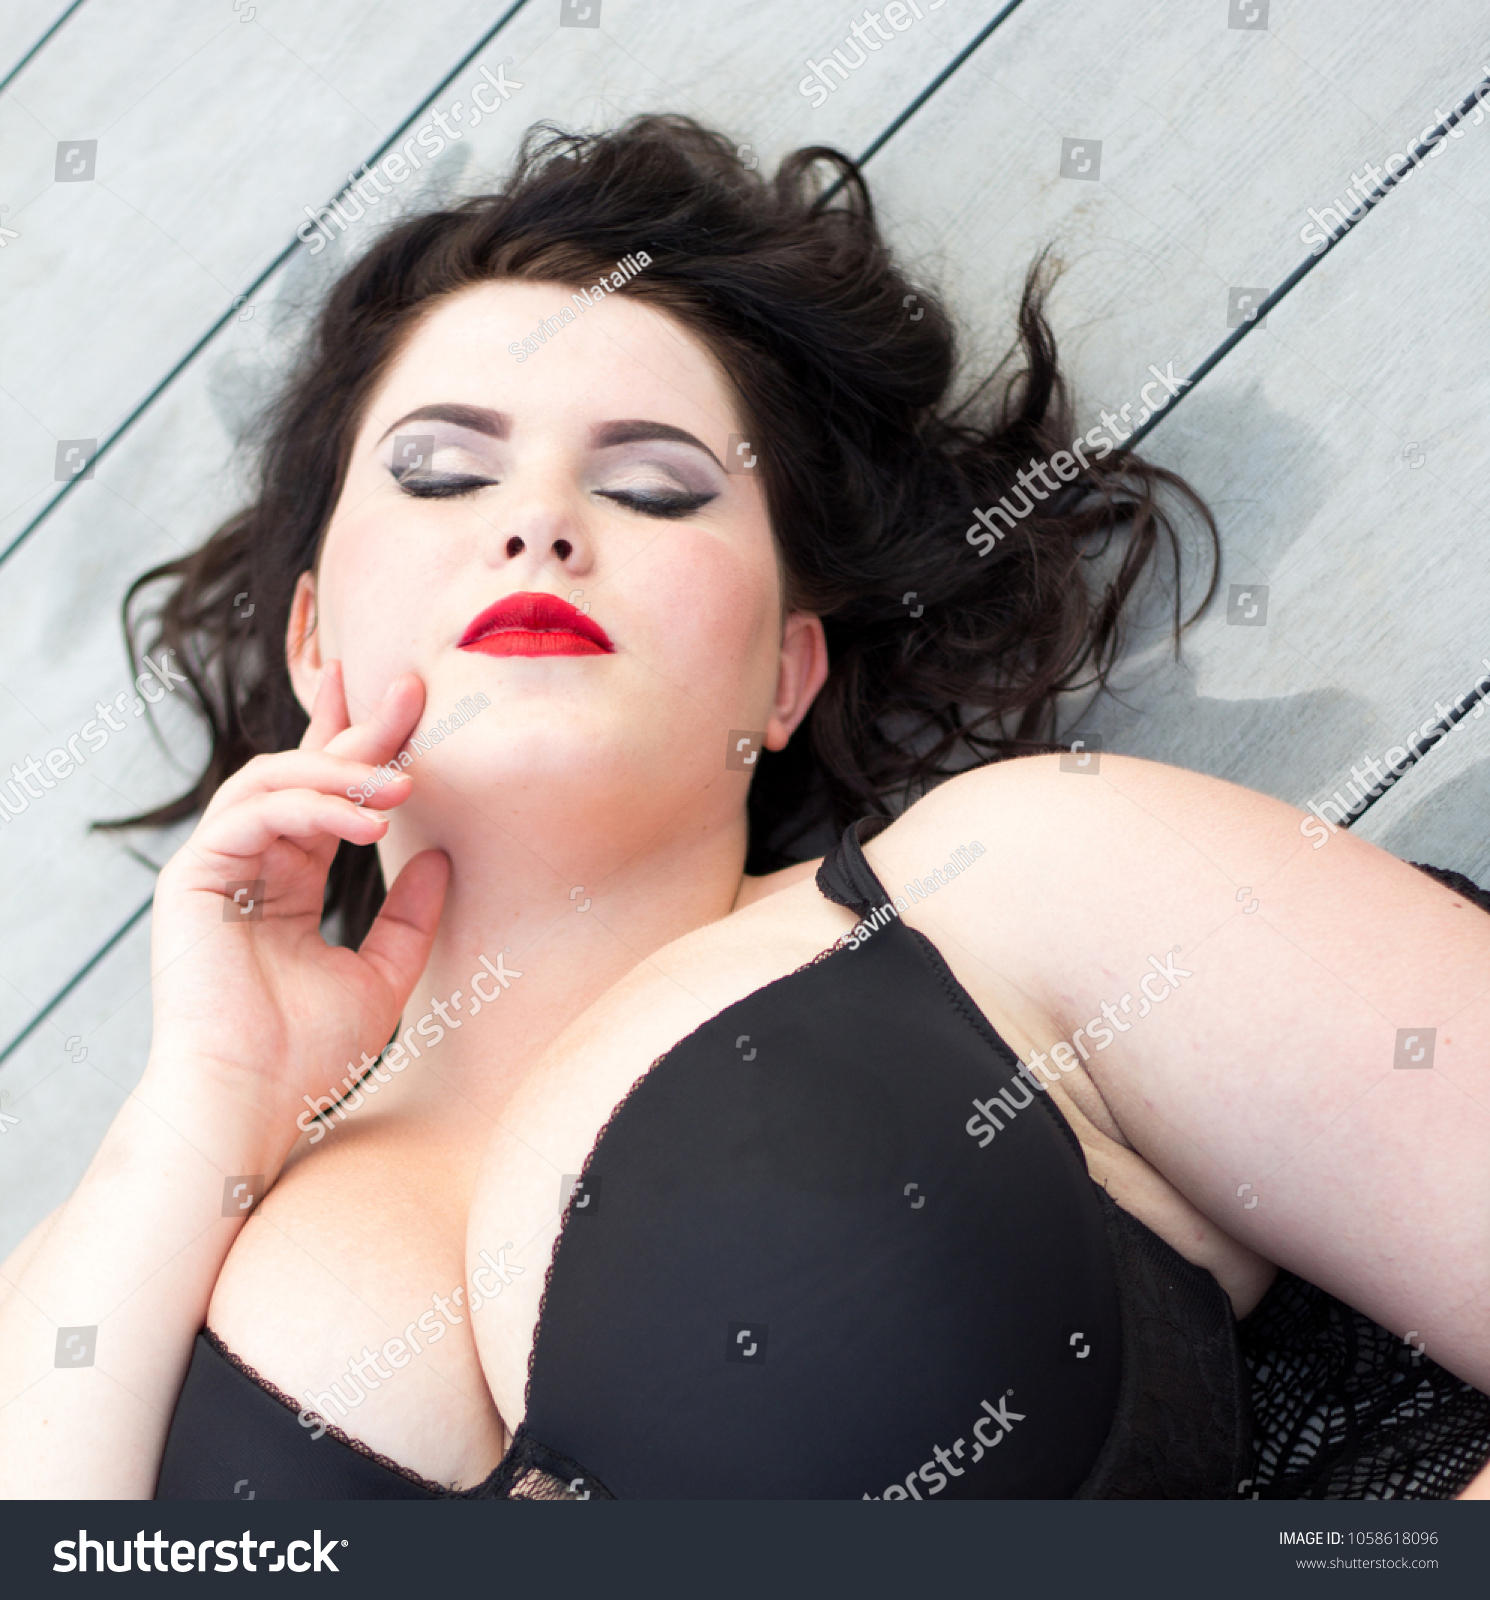 Young beautiful busty curvy plus size model with big breast in black bra,  xxl woman